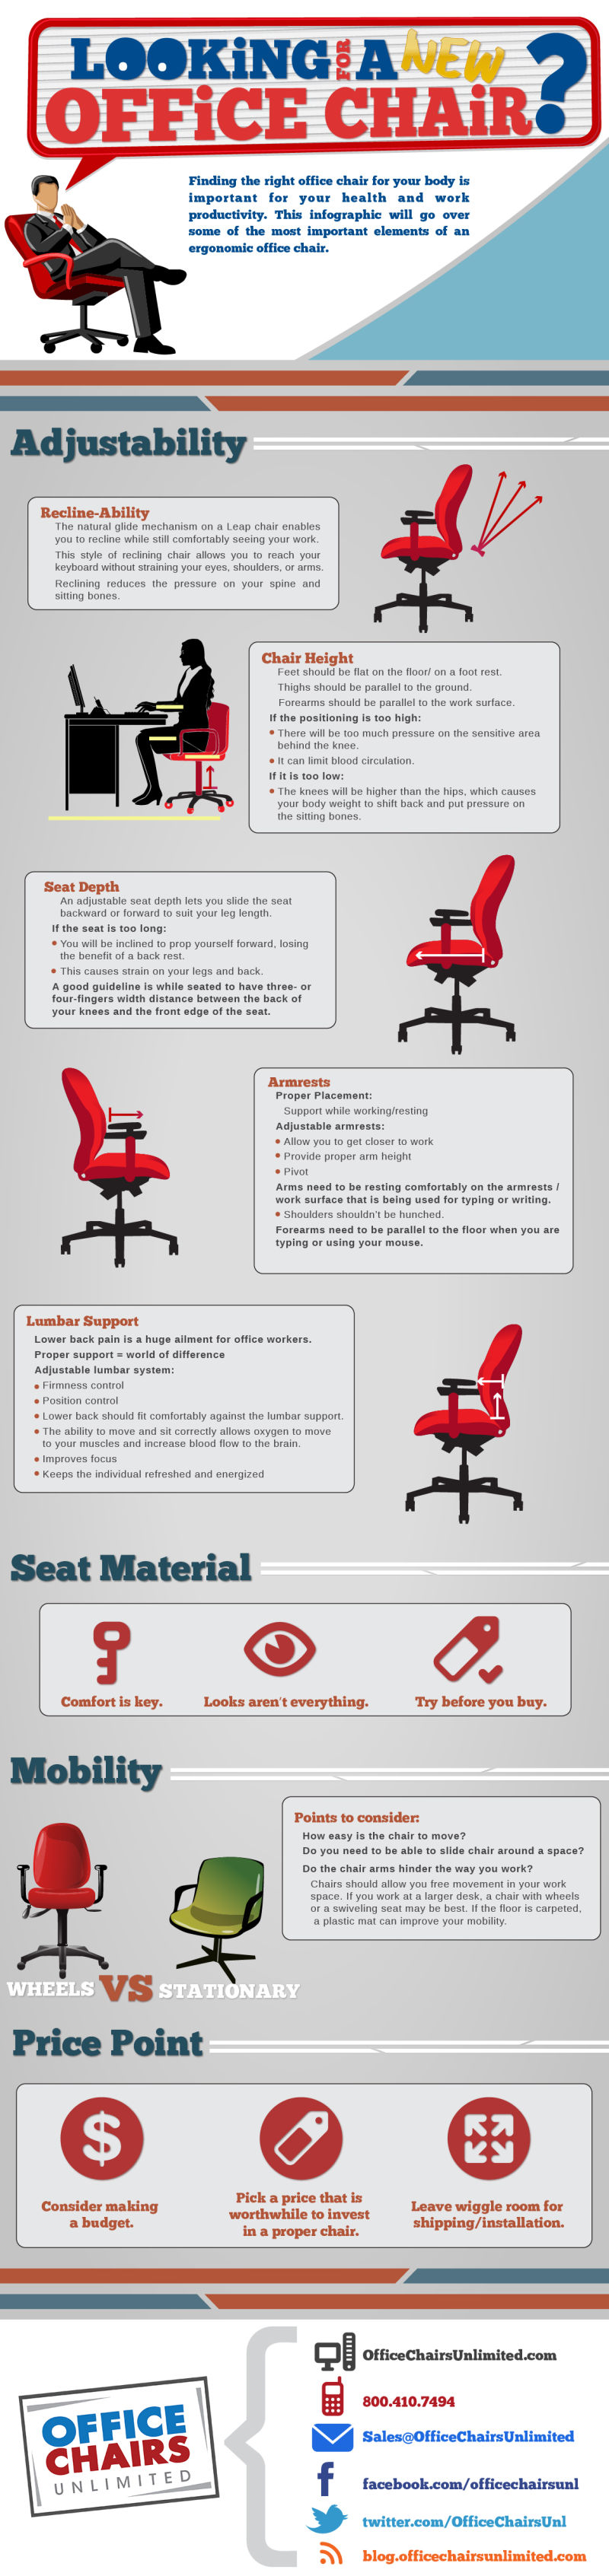 how to pick an office chair.jpg